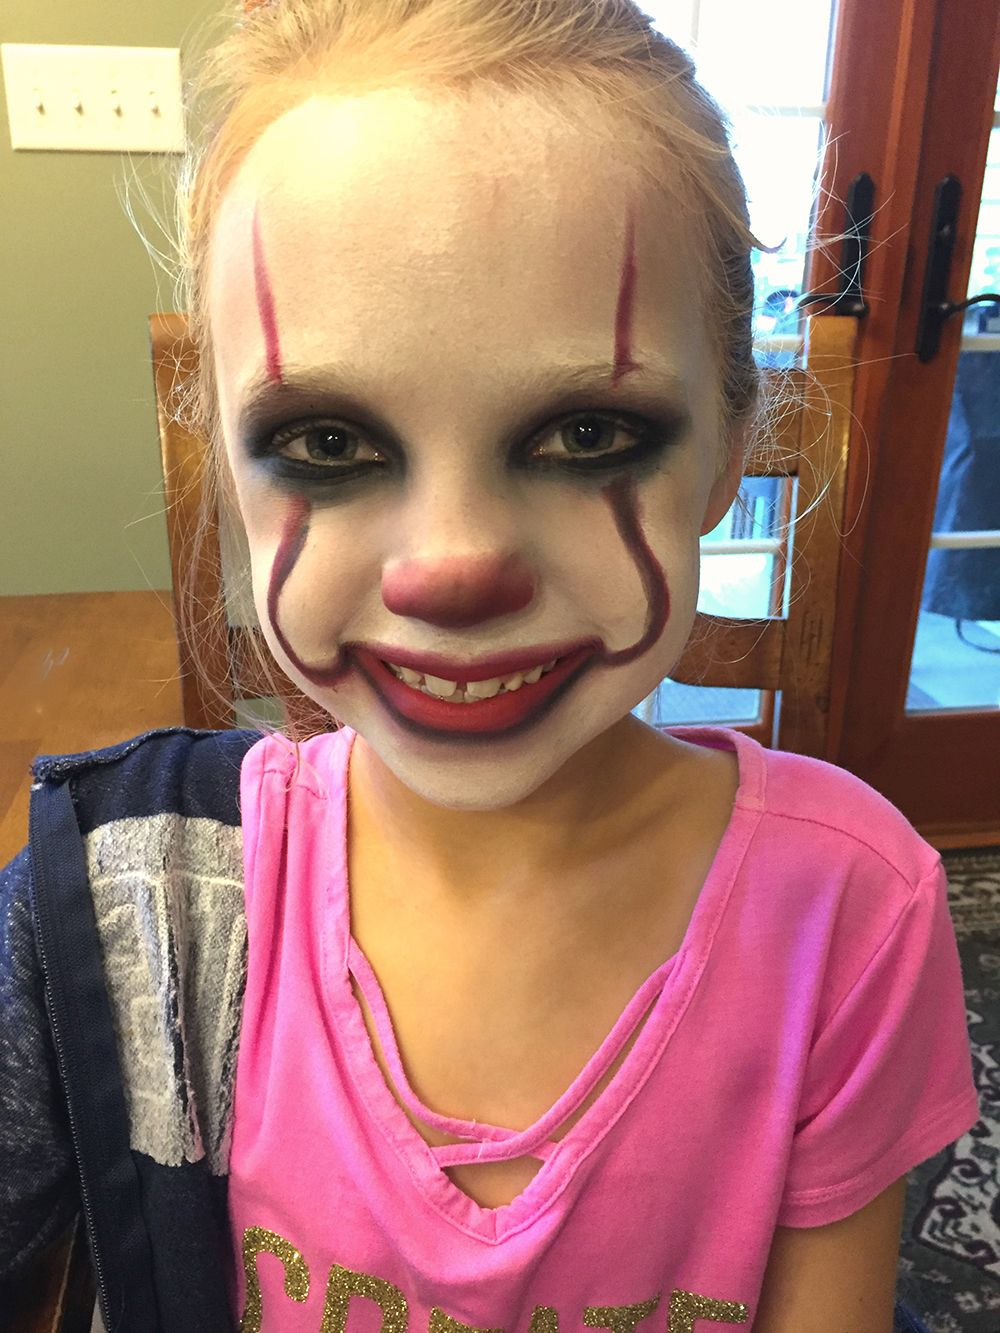 IT Movie Pennywise Makeup Tutorial for Kids Cute